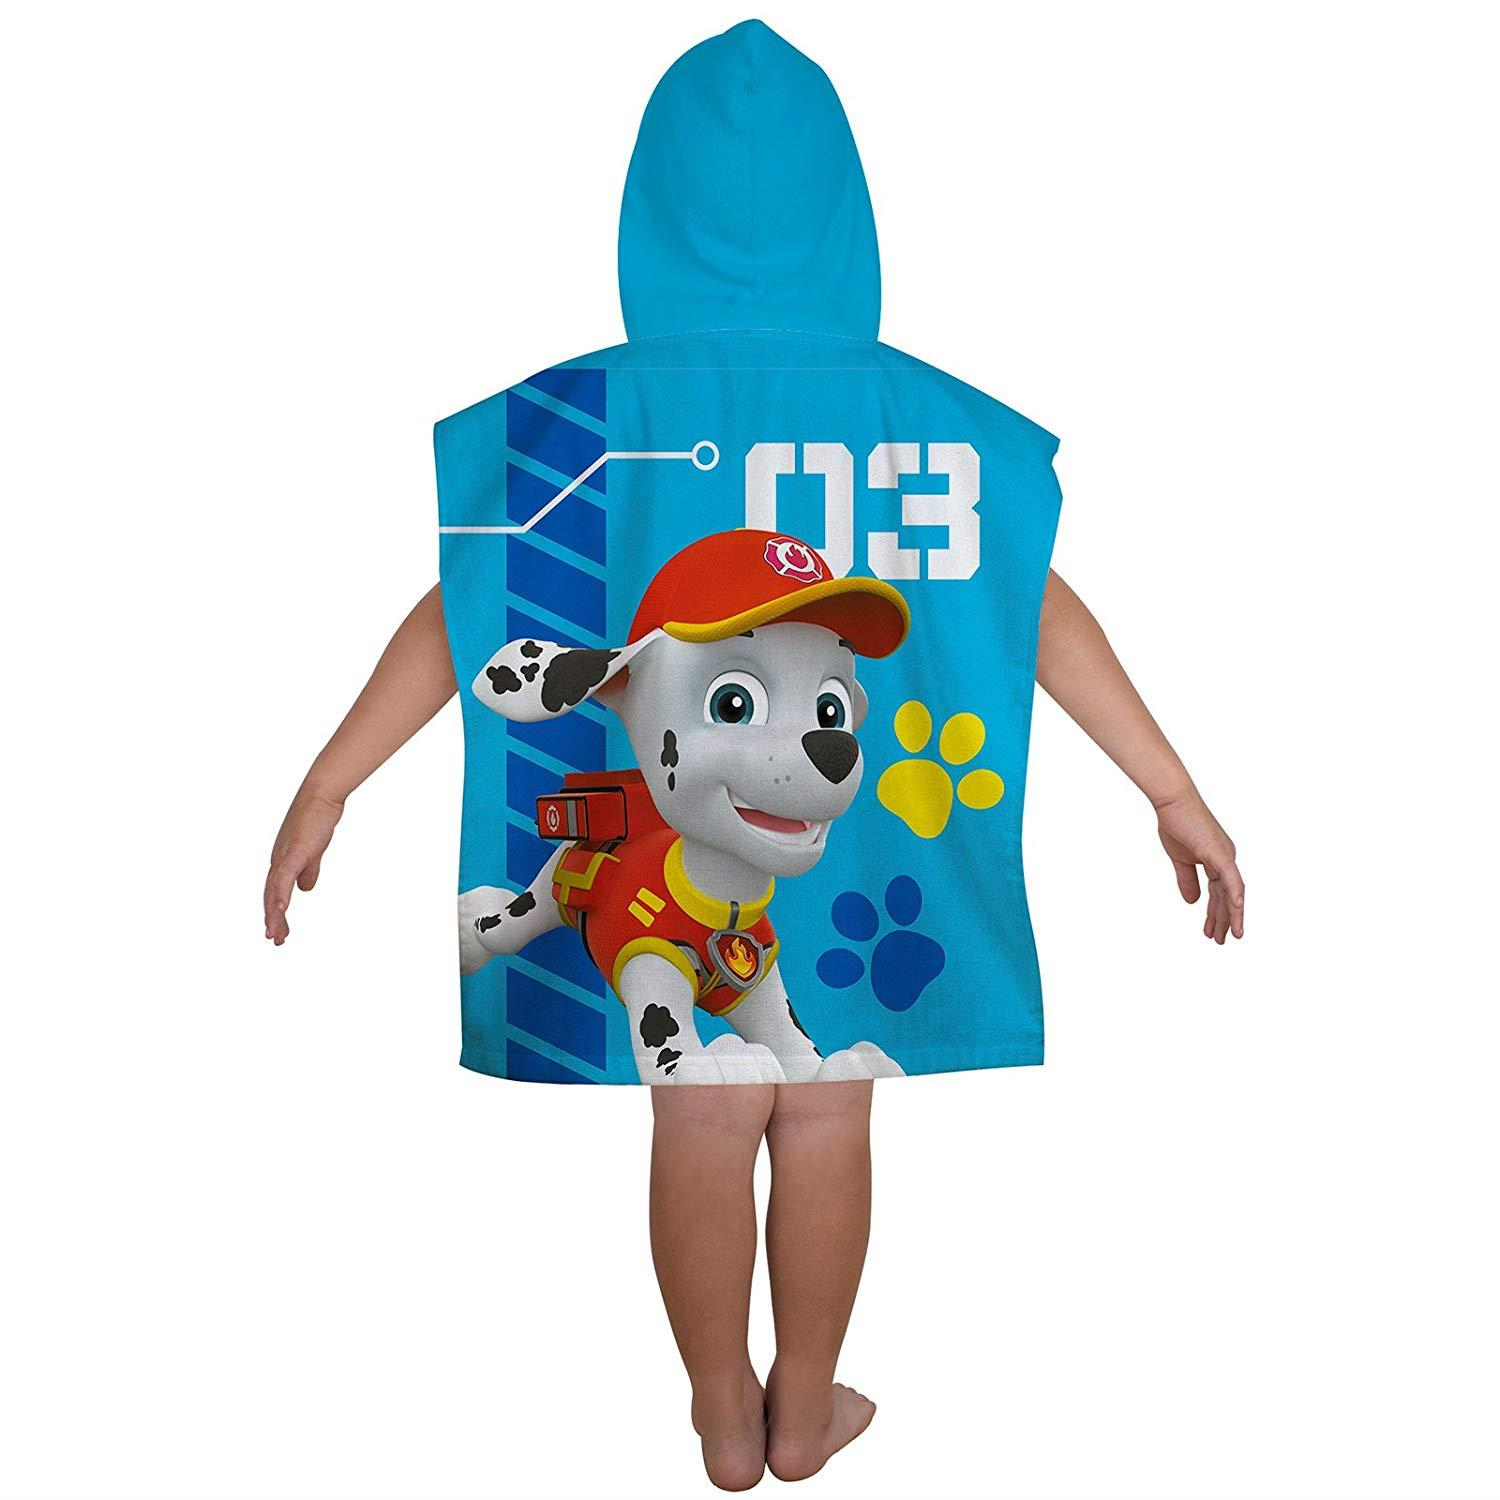 Kids-Boys-Novelty-Girls-Character-Hooded-Towel-Poncho-Beach-Bath-Swim thumbnail 23